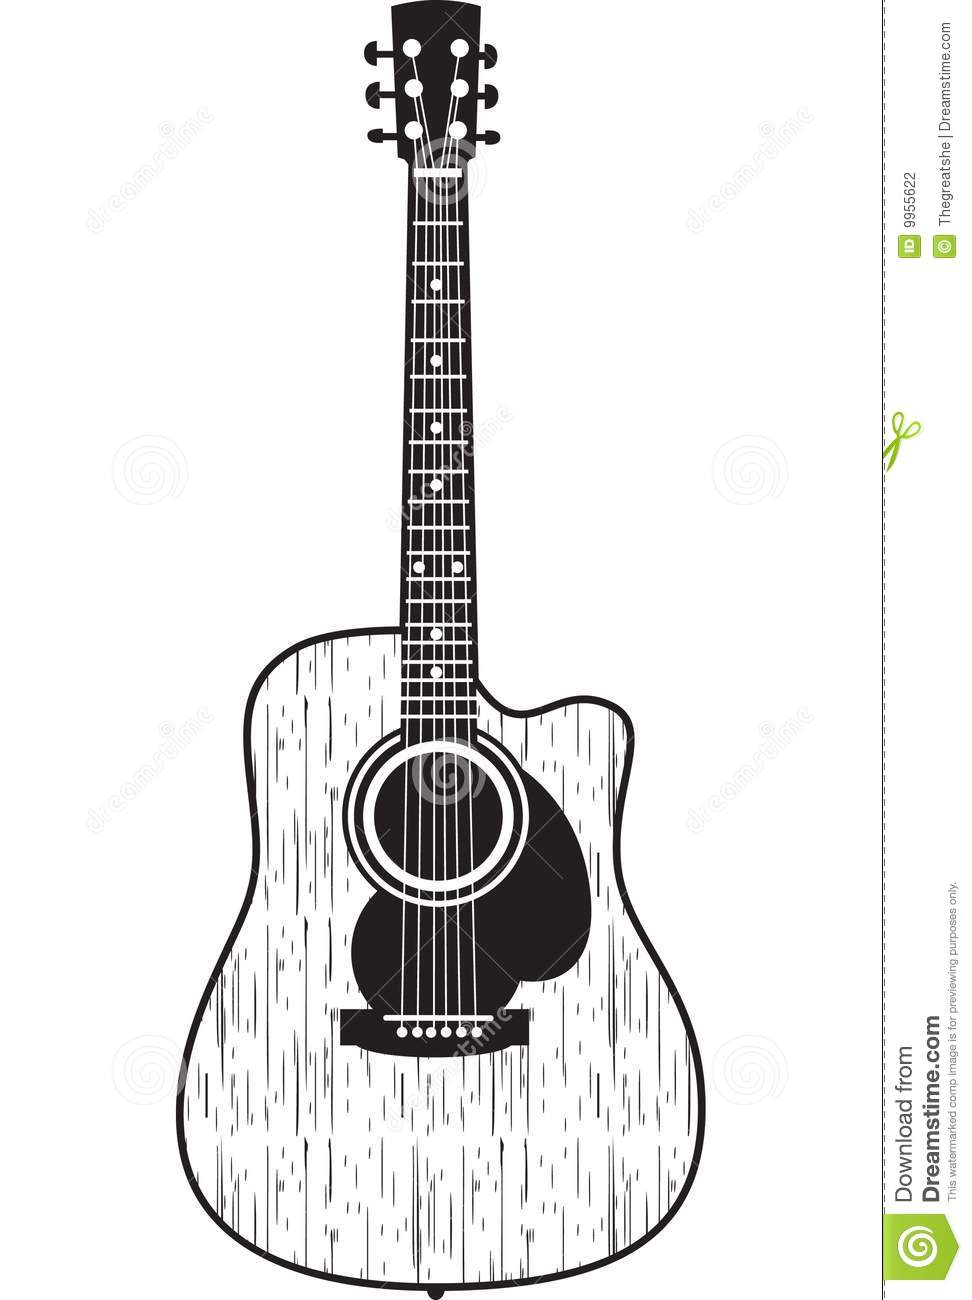 Guitare acoustique illustration de vecteur illustration - Coloriage guitare classique ...